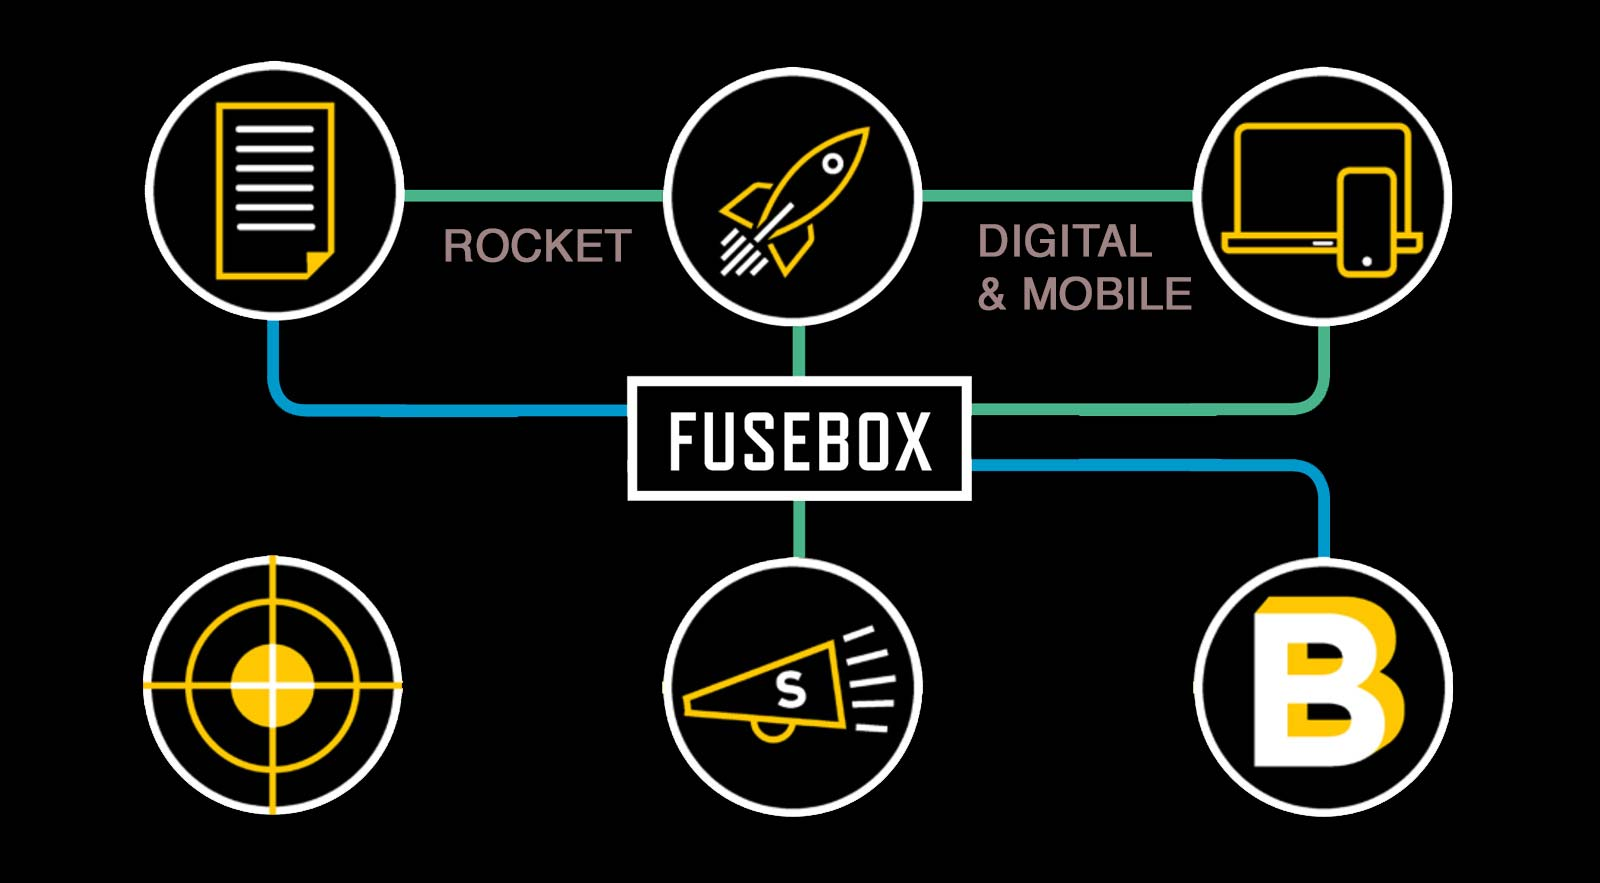 Fusebox- focus on rockets and digital & mobile